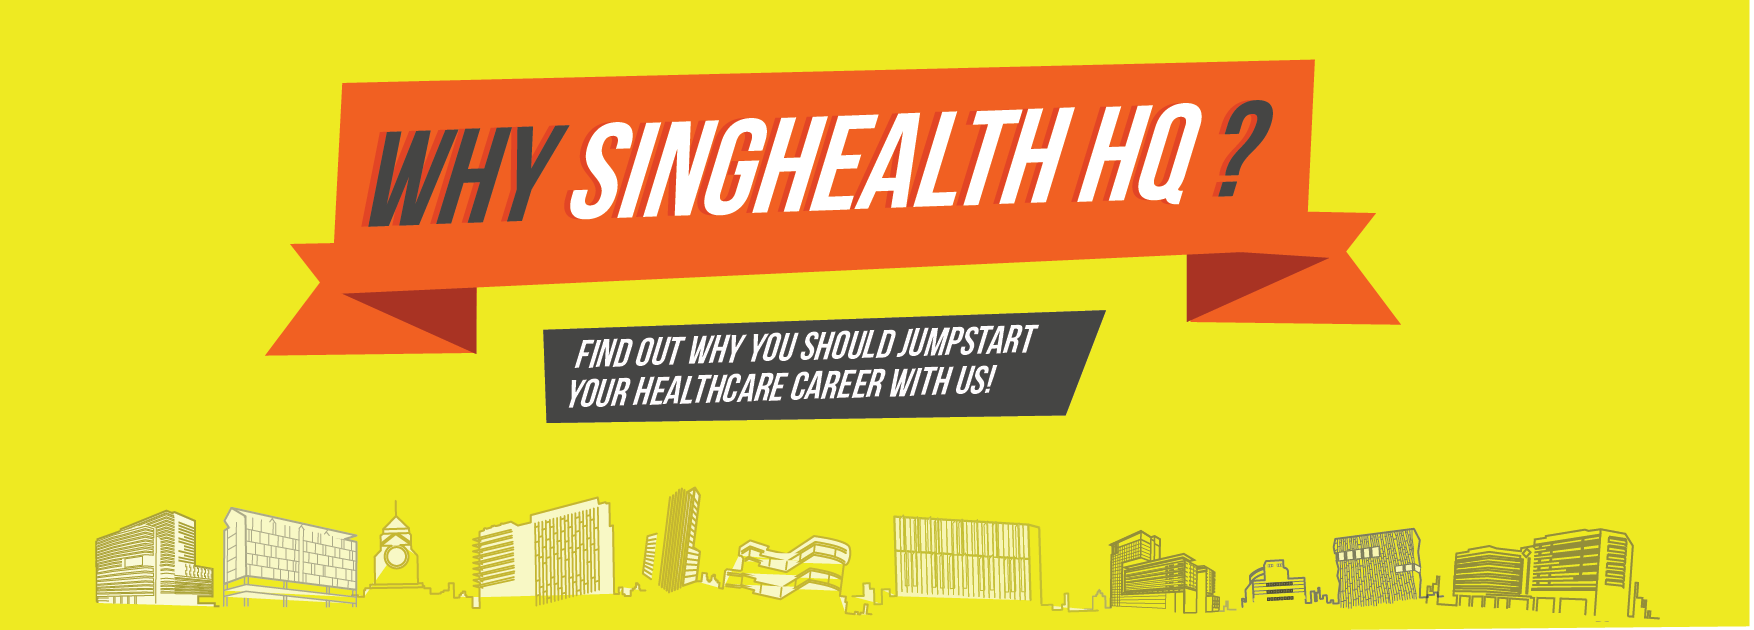 Why SingHealth HQ